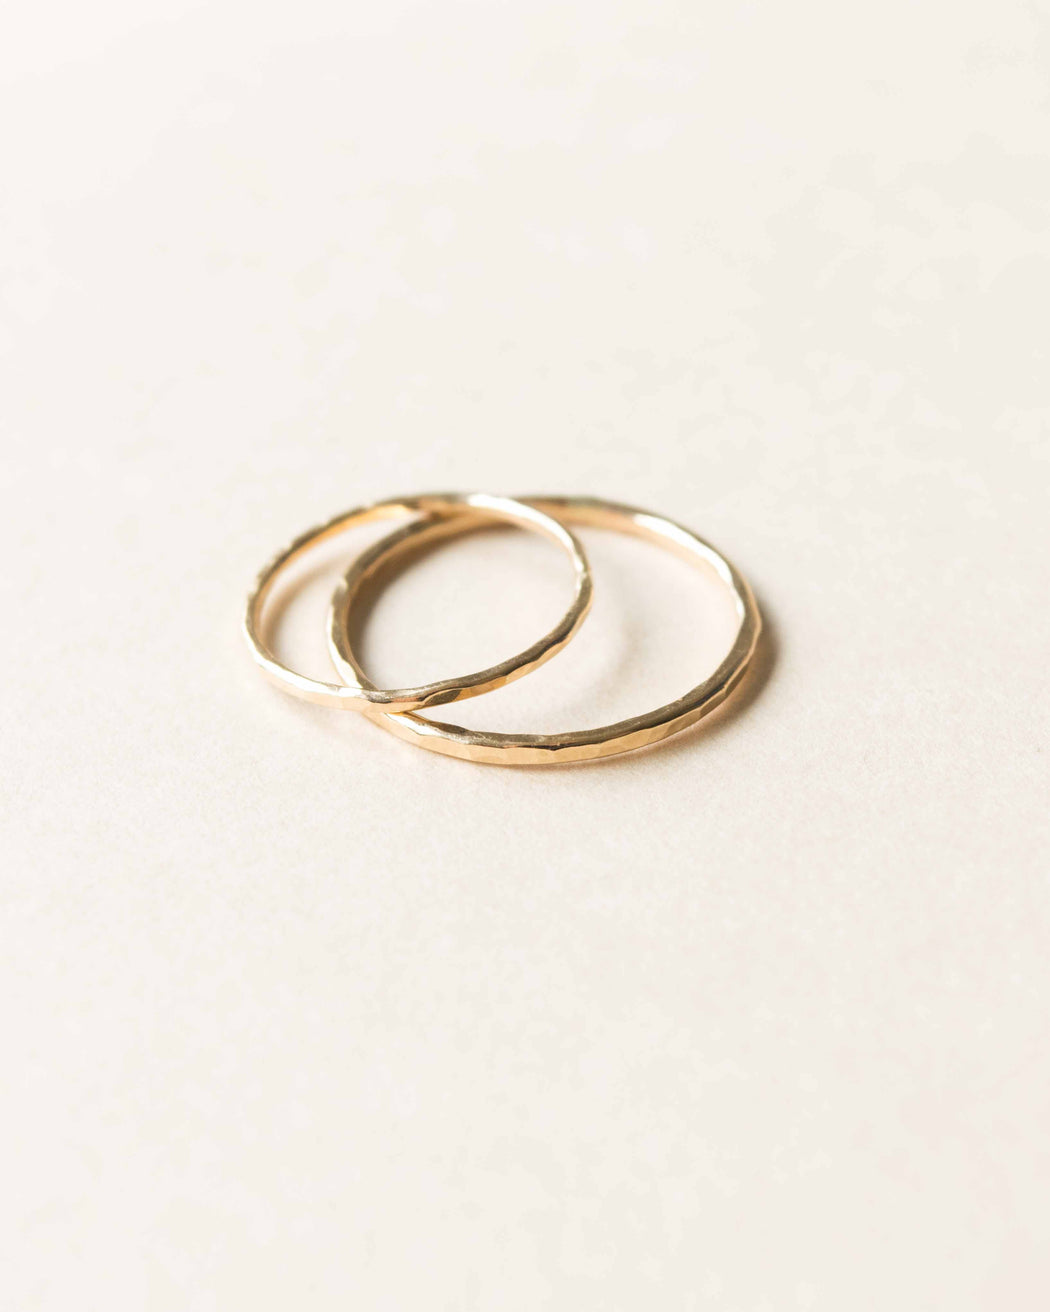 Goldeluxe - Hammered Band Stacking Ring | 14k Gold-Filled